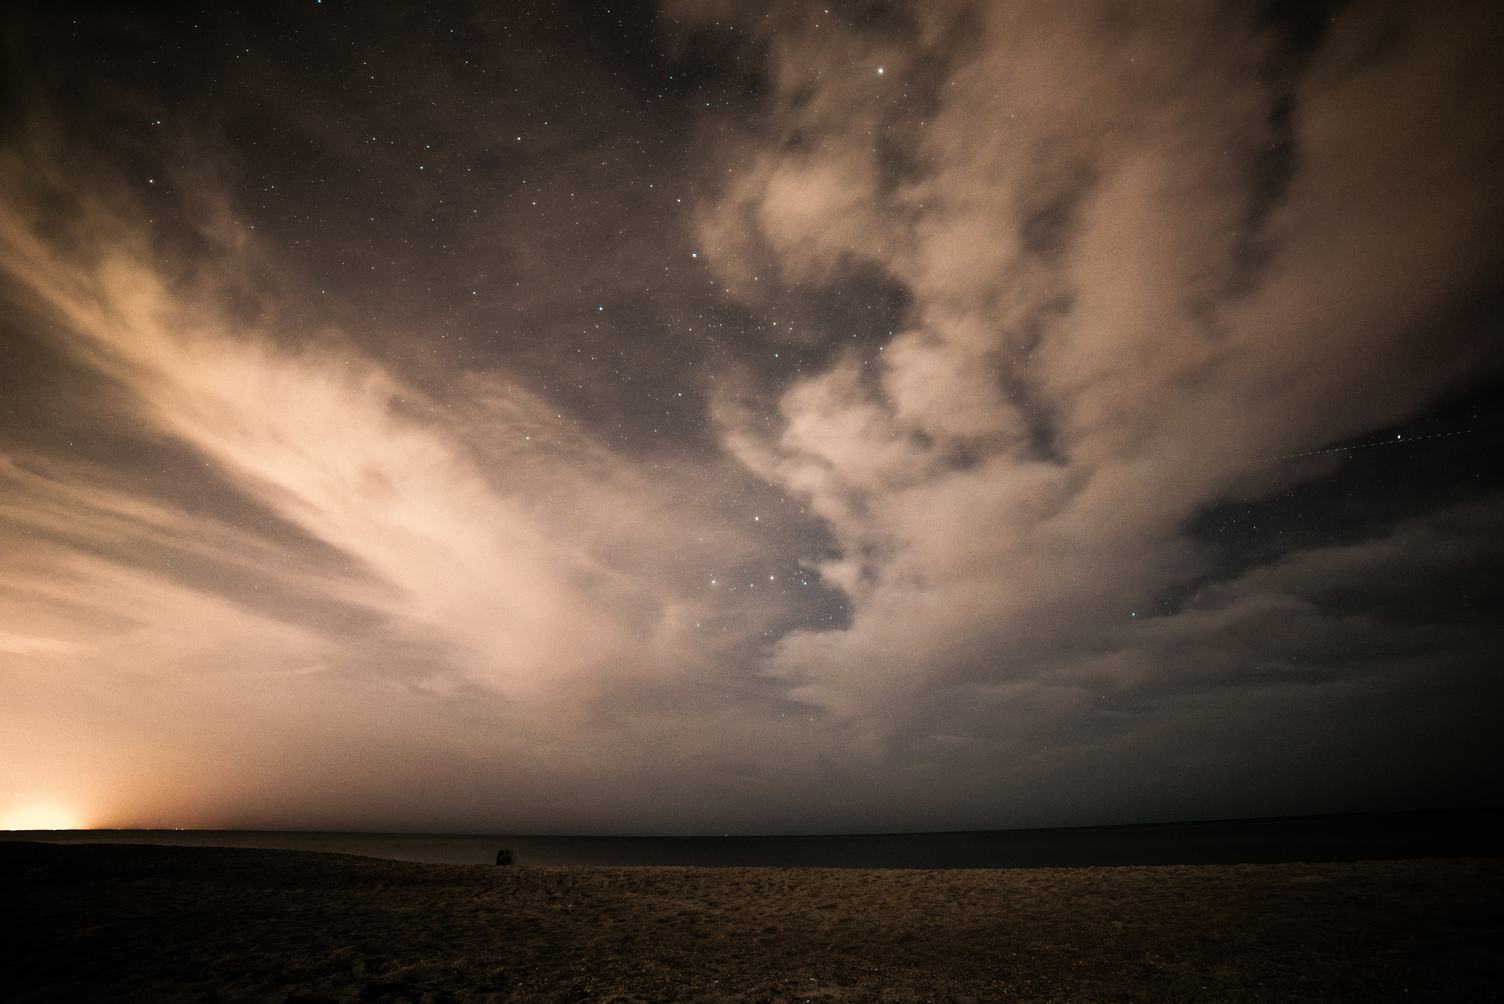 Starry Sky with Clouds on the Beach